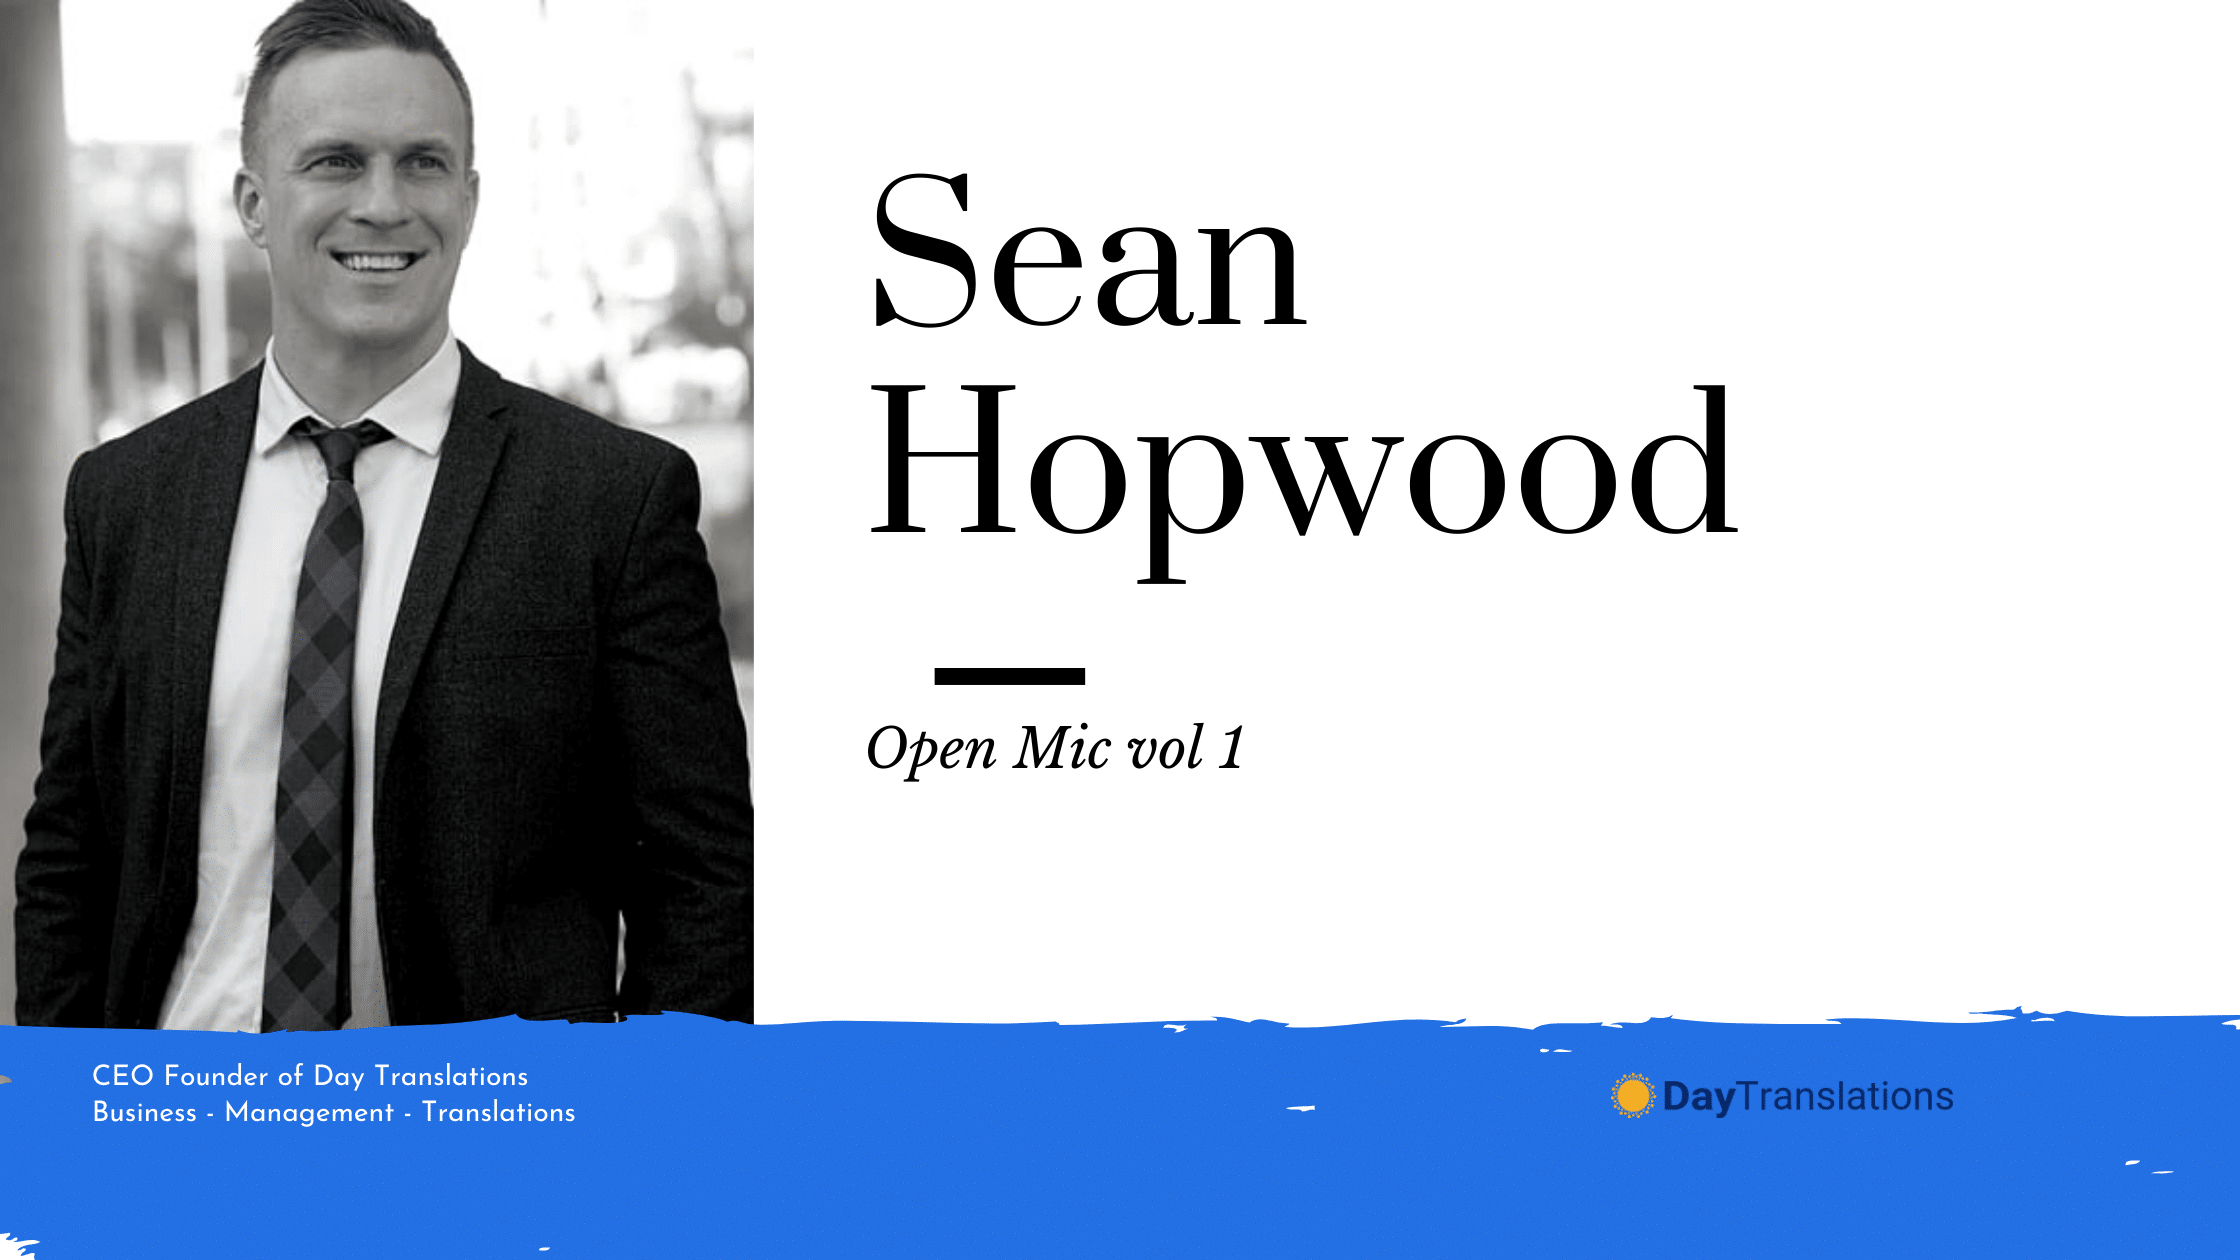 Open Mic vol 1 – Interviewing Mr Sean Hopwood